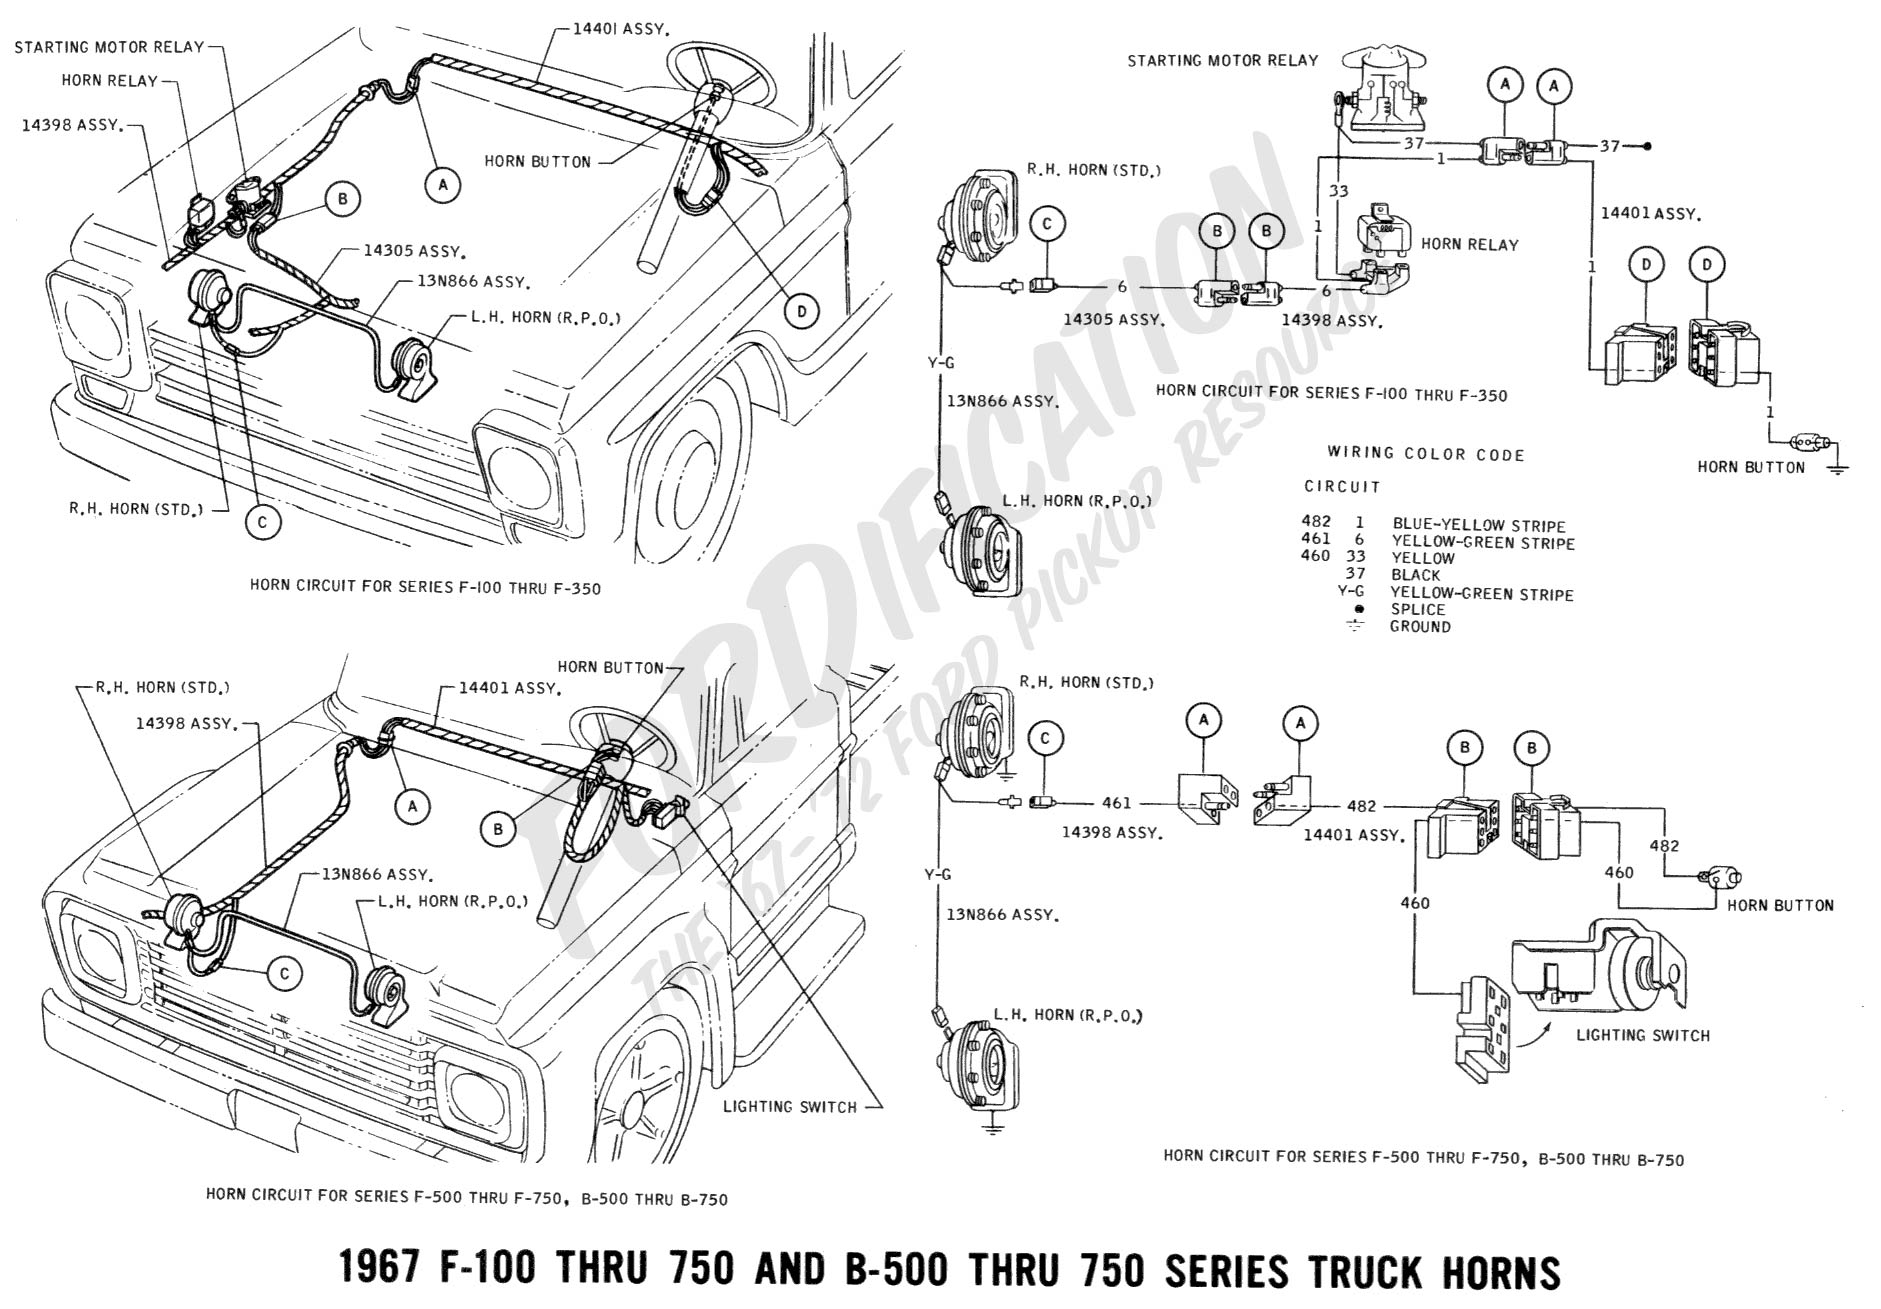 HW1622 also 1966 Mustang Wiring Diagrams additionally 1979 Ford Truck Fuse Box likewise Autolite 1100 Carburetor Diagram furthermore 1966 Mustang Wiring Diagrams. on 1965 ford mustang parts diagram